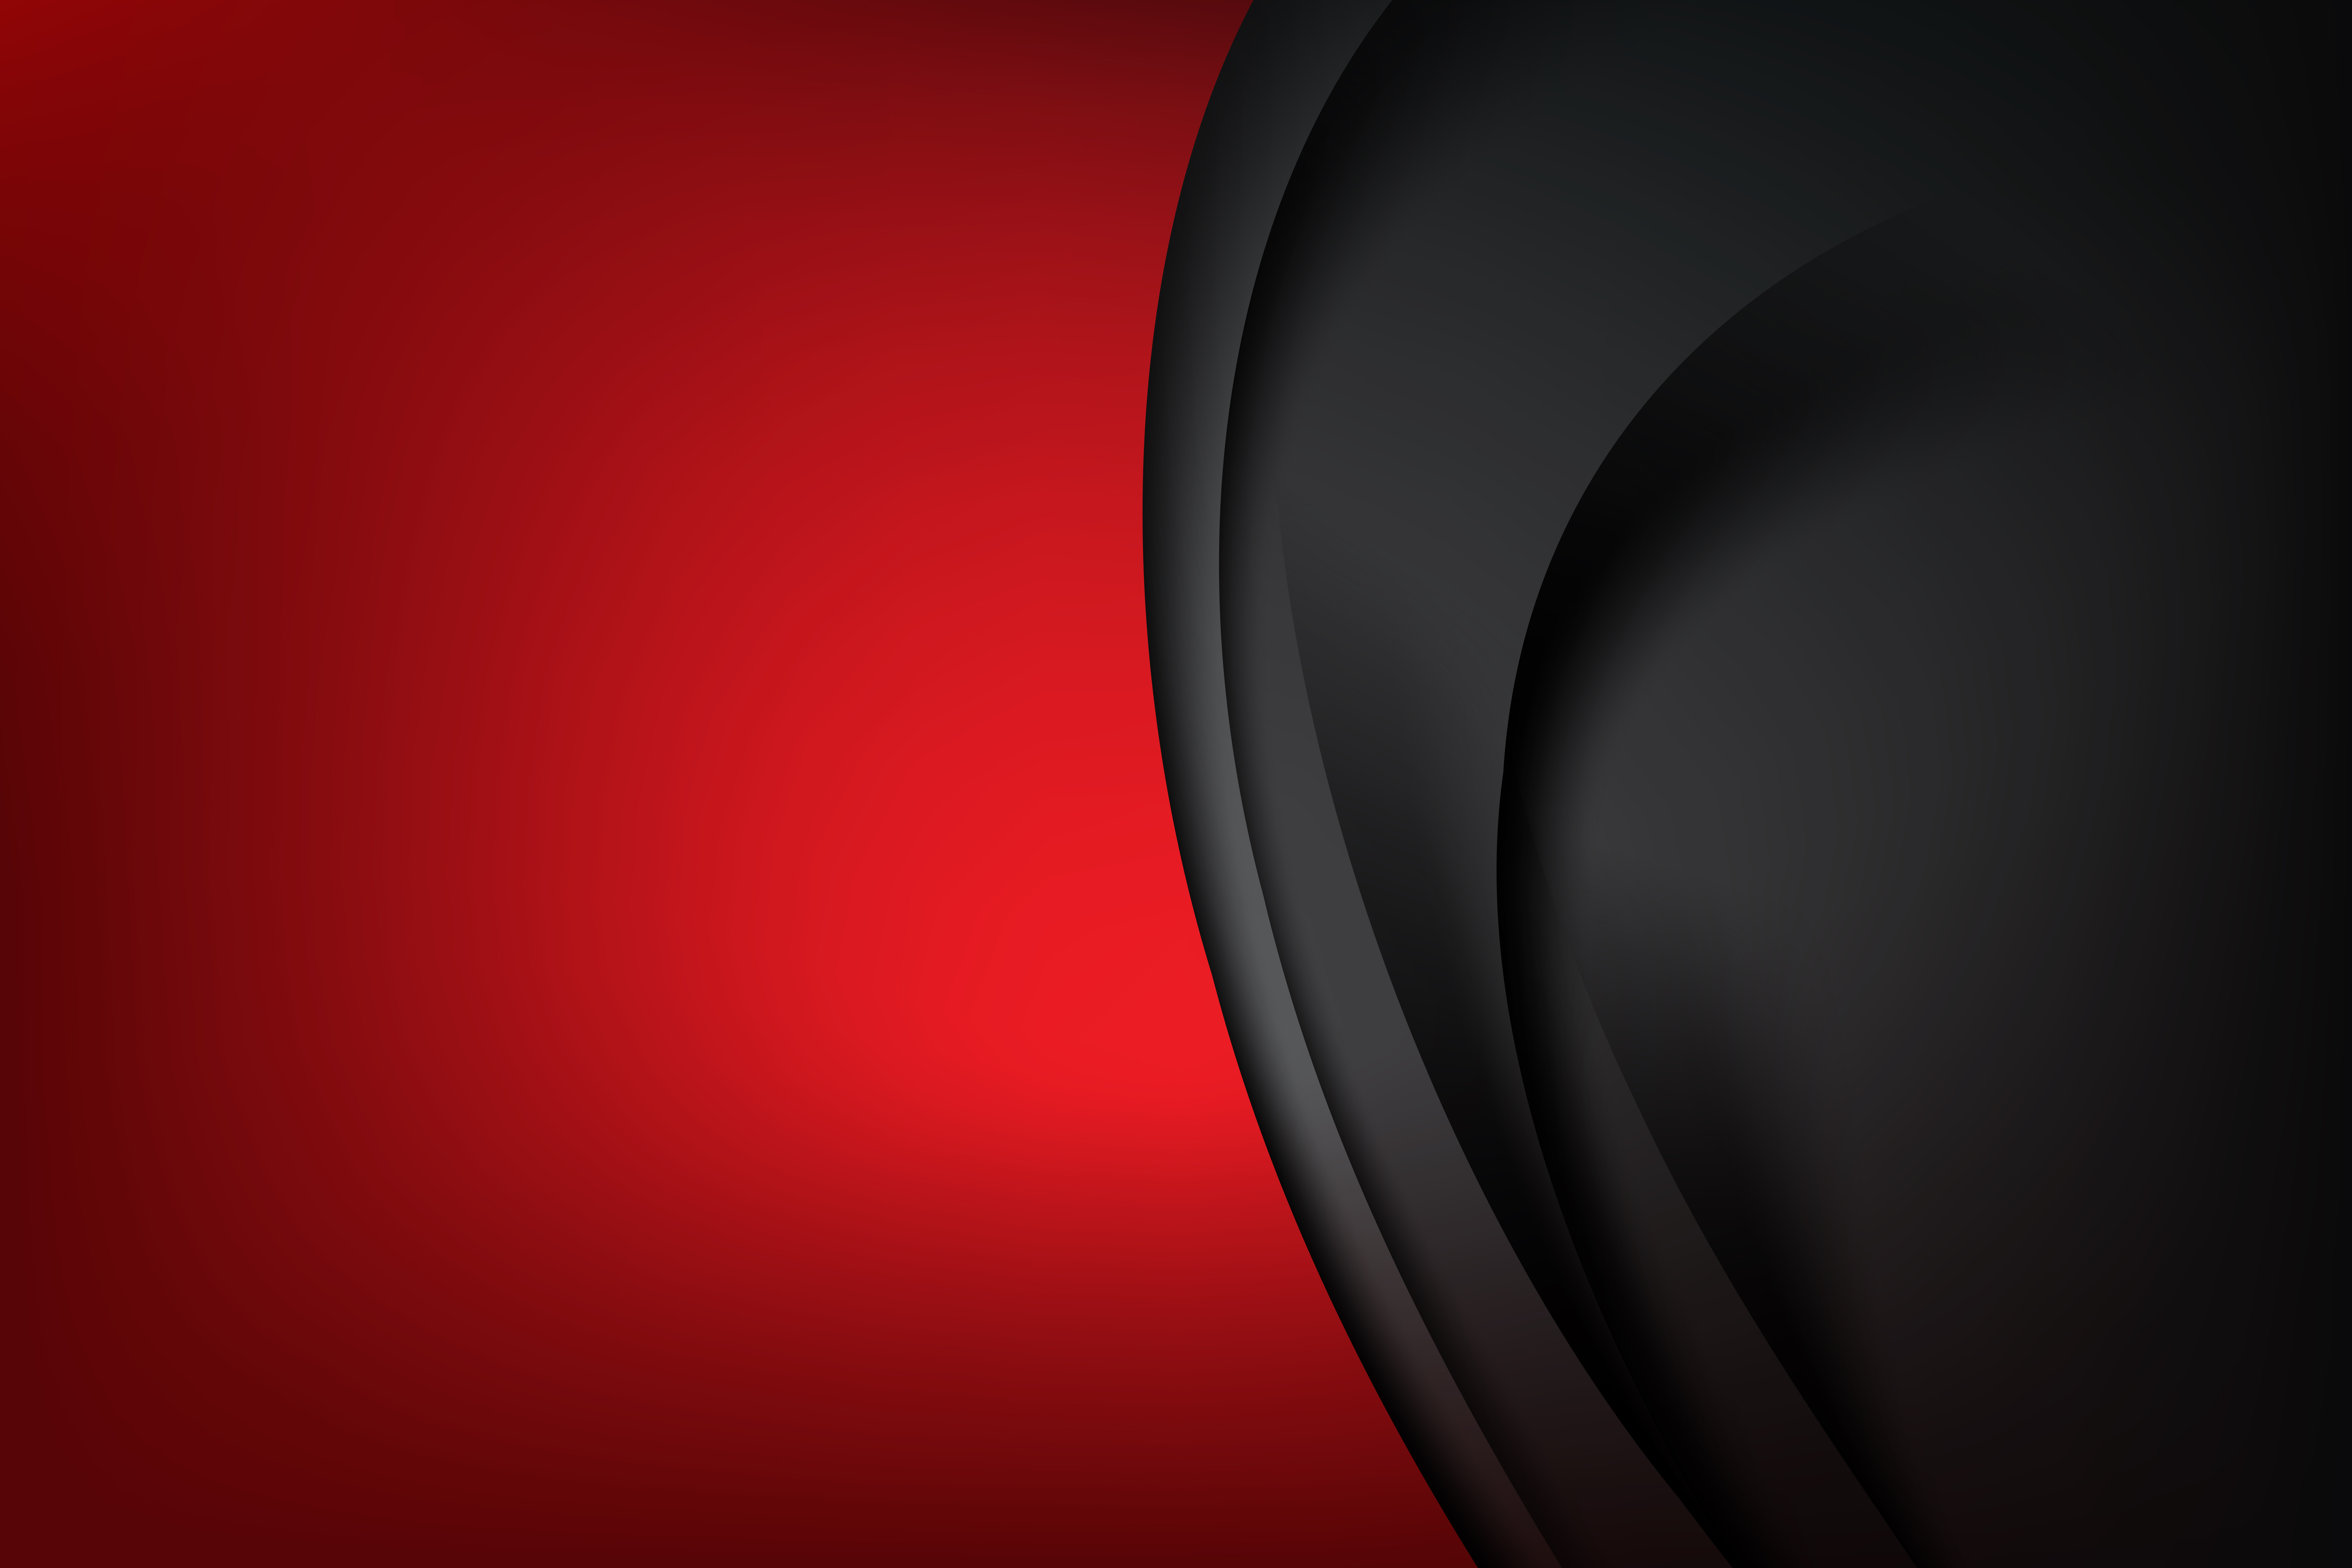 Red Abstract Background Dark And Black Layer Overlaps 002 Download Free Vectors Clipart Graphics Vector Art